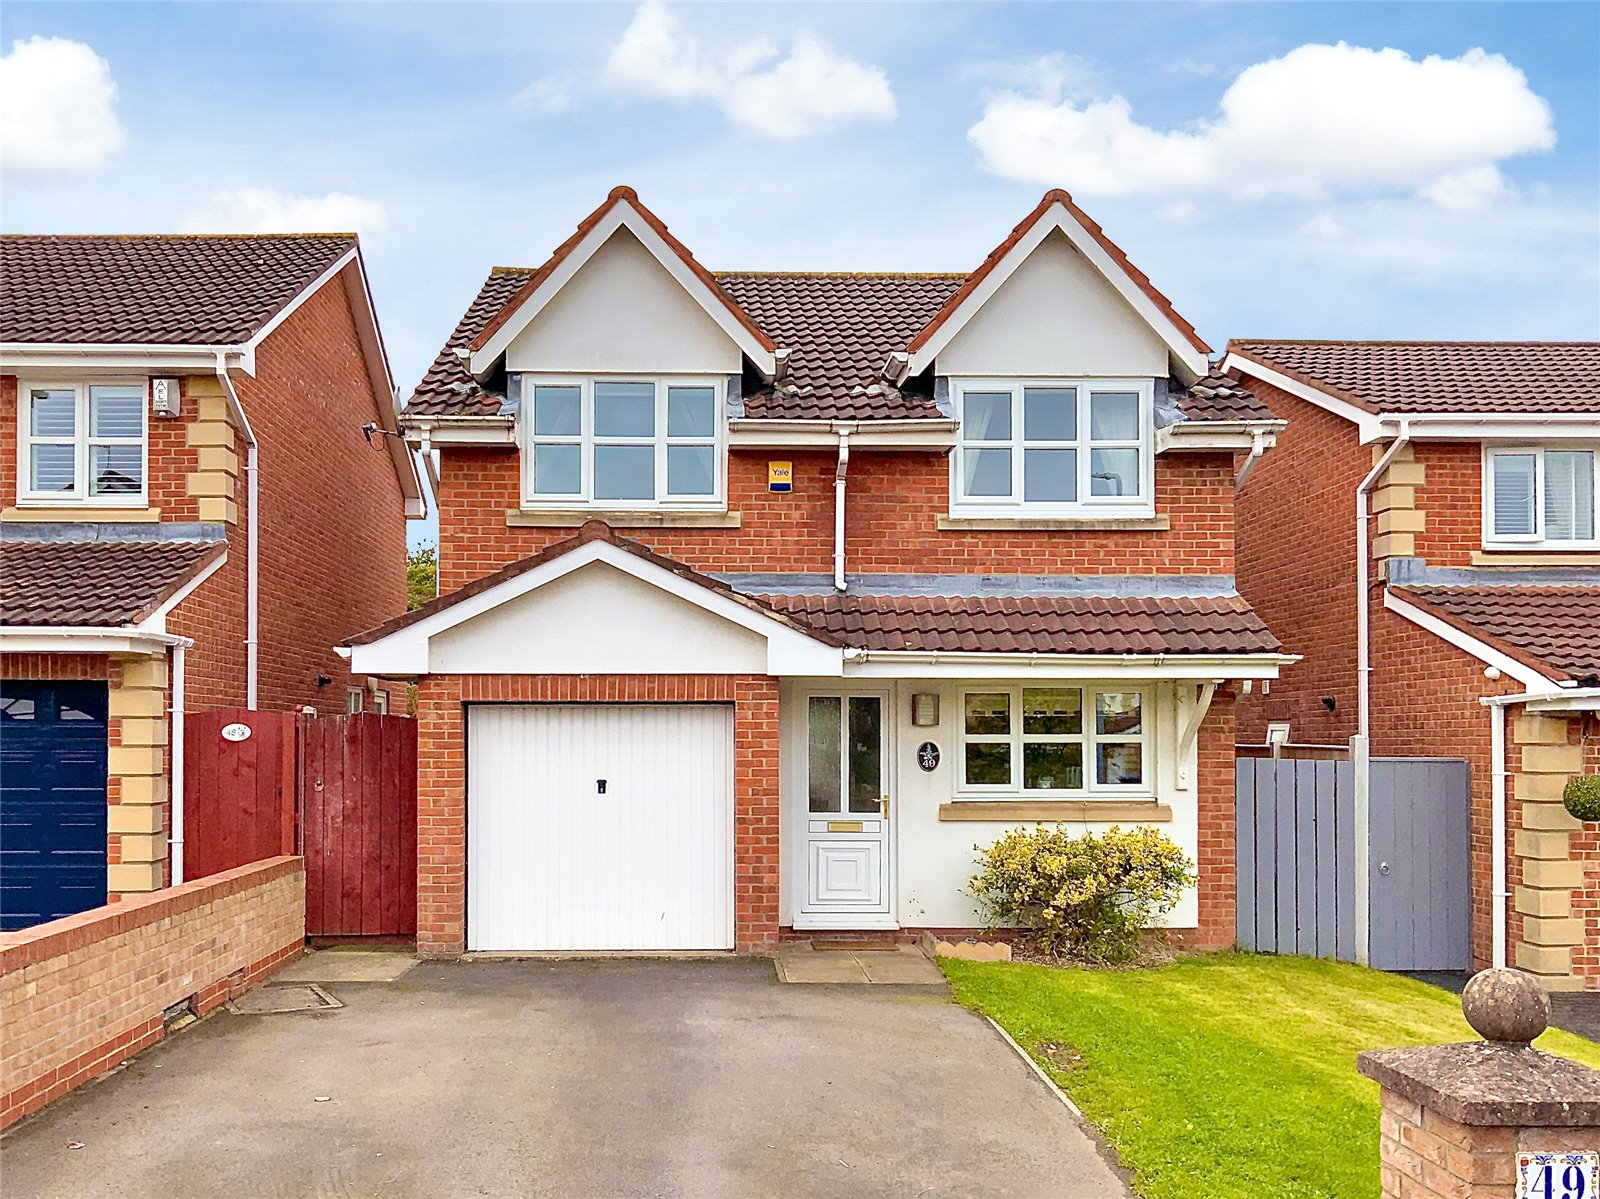 3 bed house for sale in Foxgloves, Coulby Newham 1